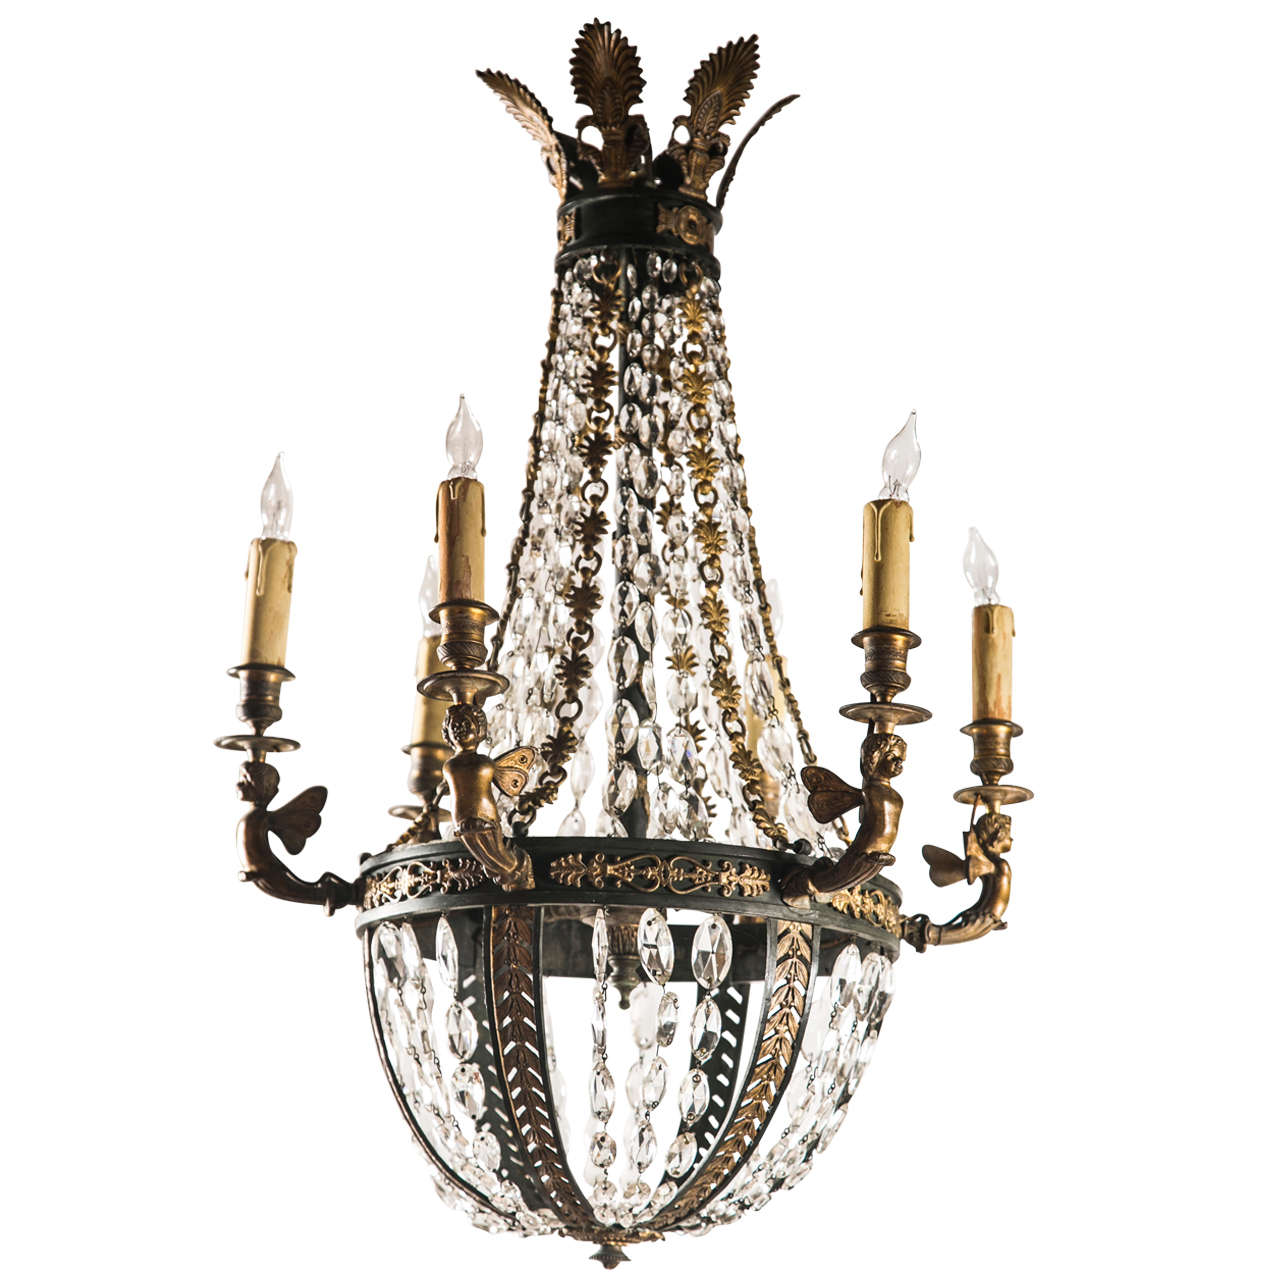 Crystal And Bronze 6 Light Chandelier For Sale At 1stdibs